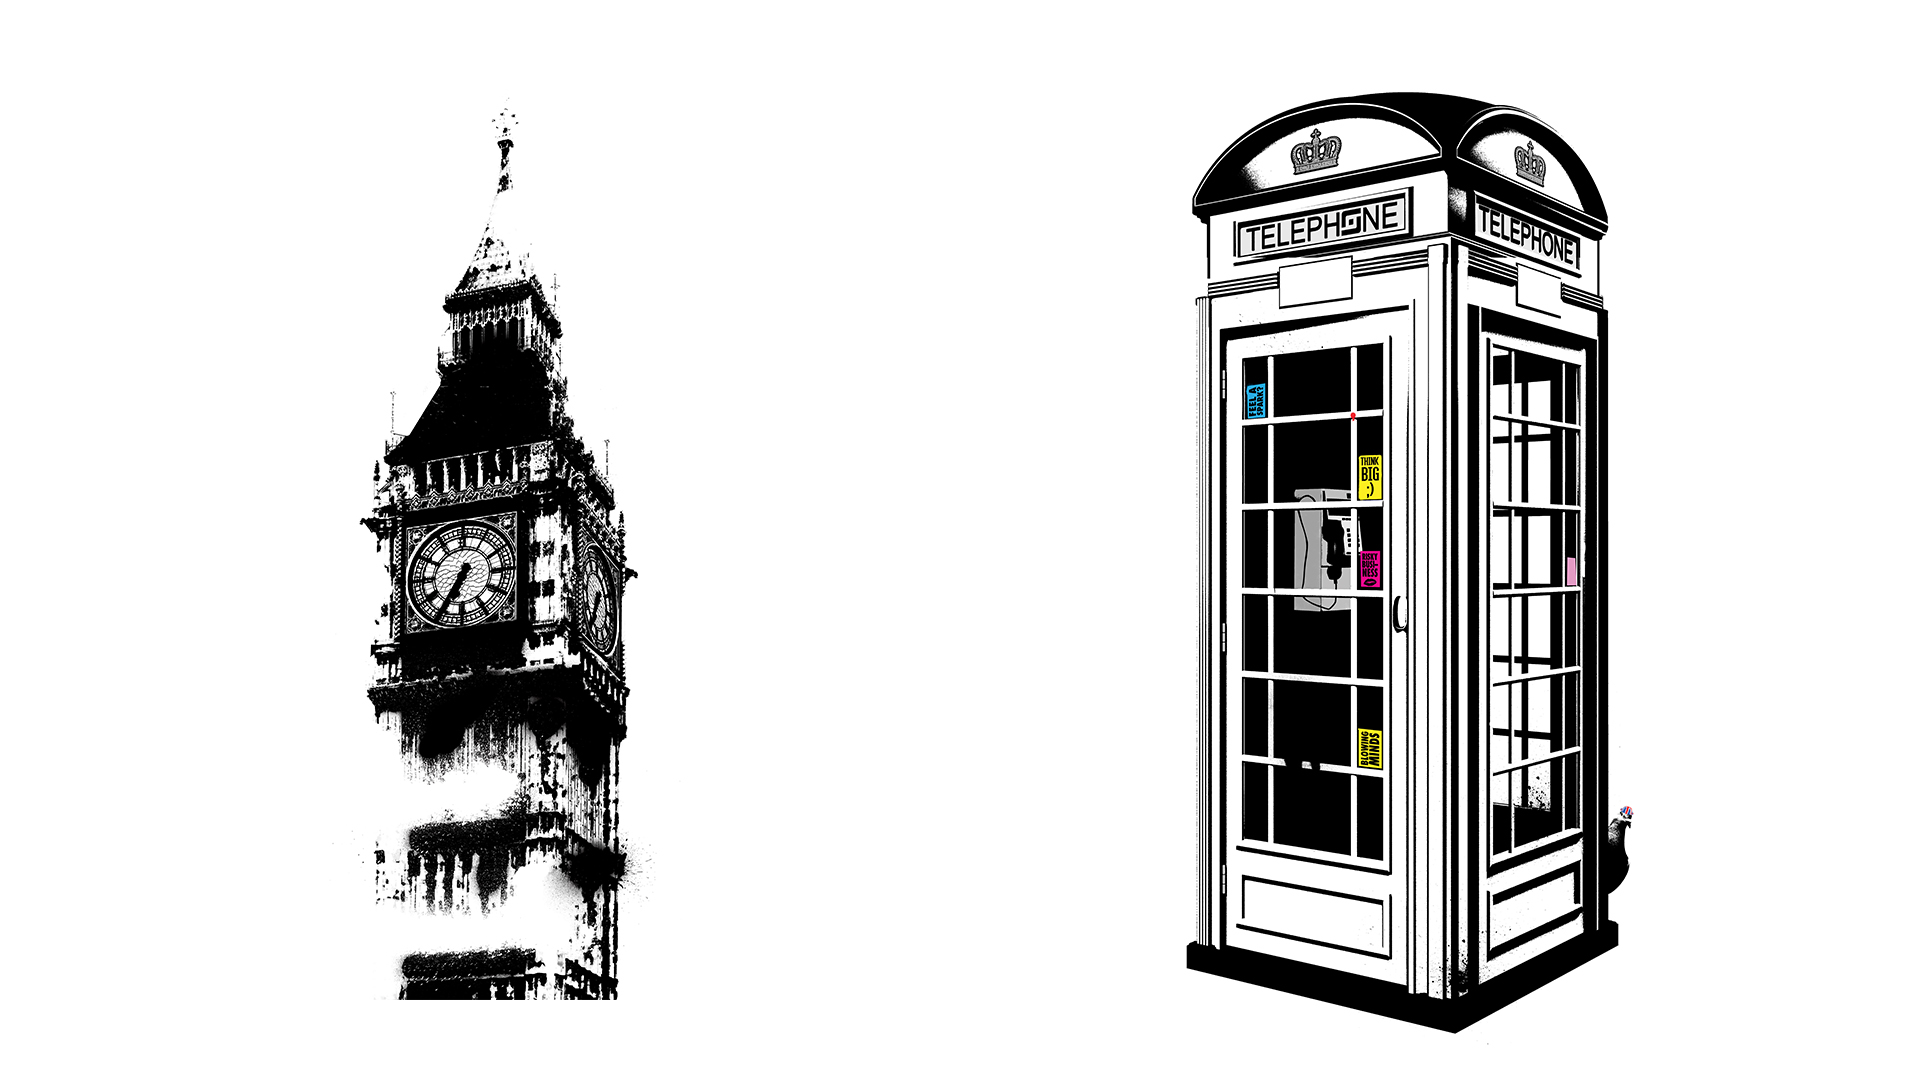 Big Ben Telephone Box Graffiti